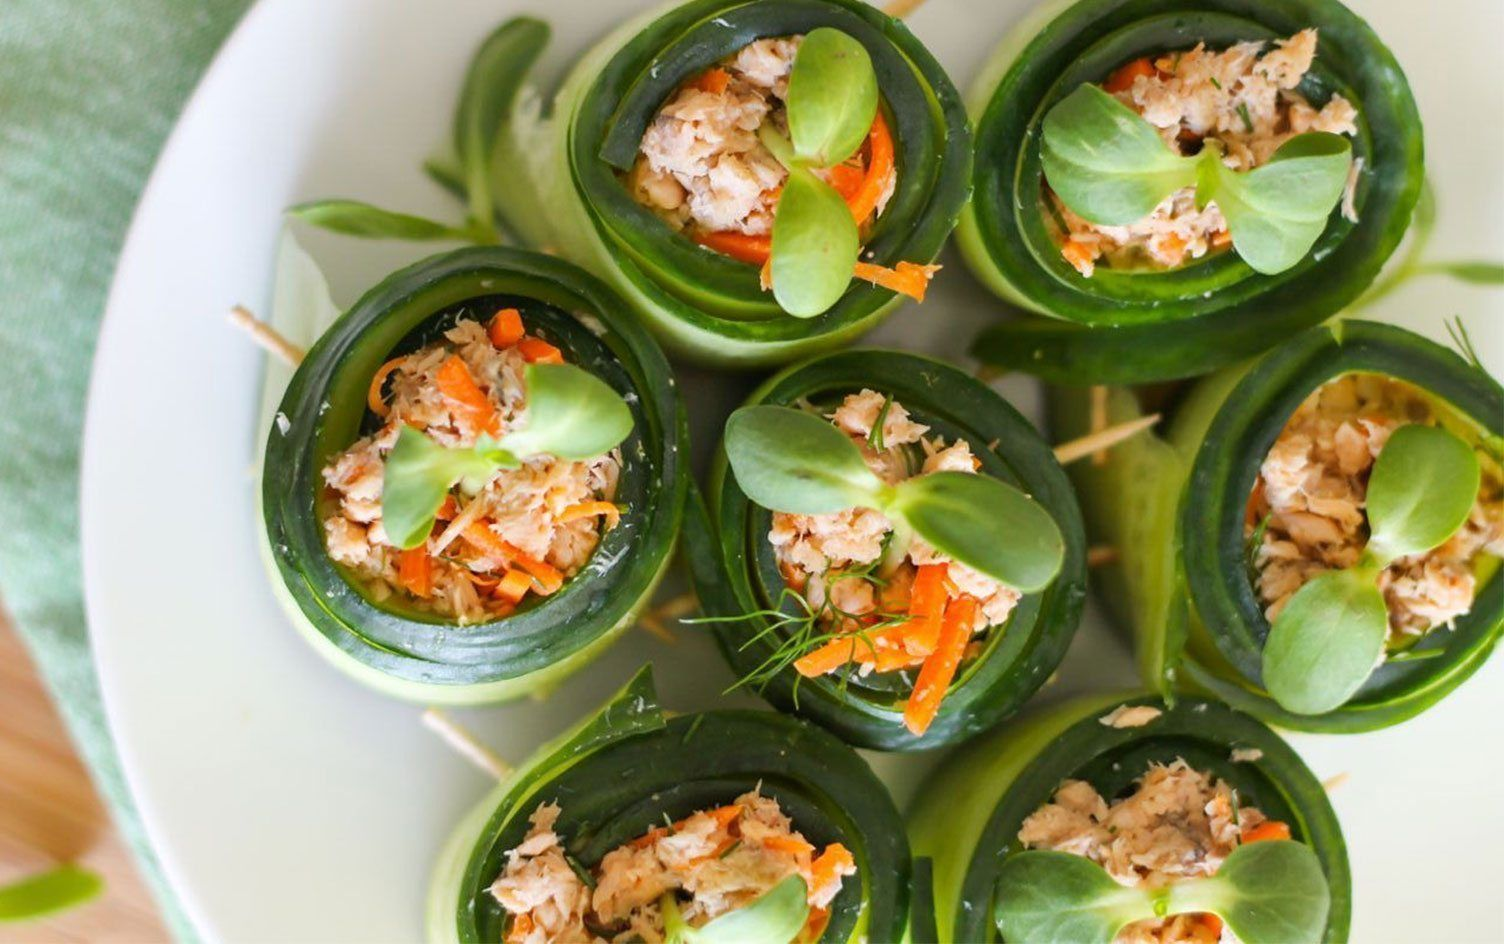 Make refreshing low-carb cucumber rolls using simple ingredients and high-protein canned salmon. These cucumber rolls make gorgeous, healthy appetizers.